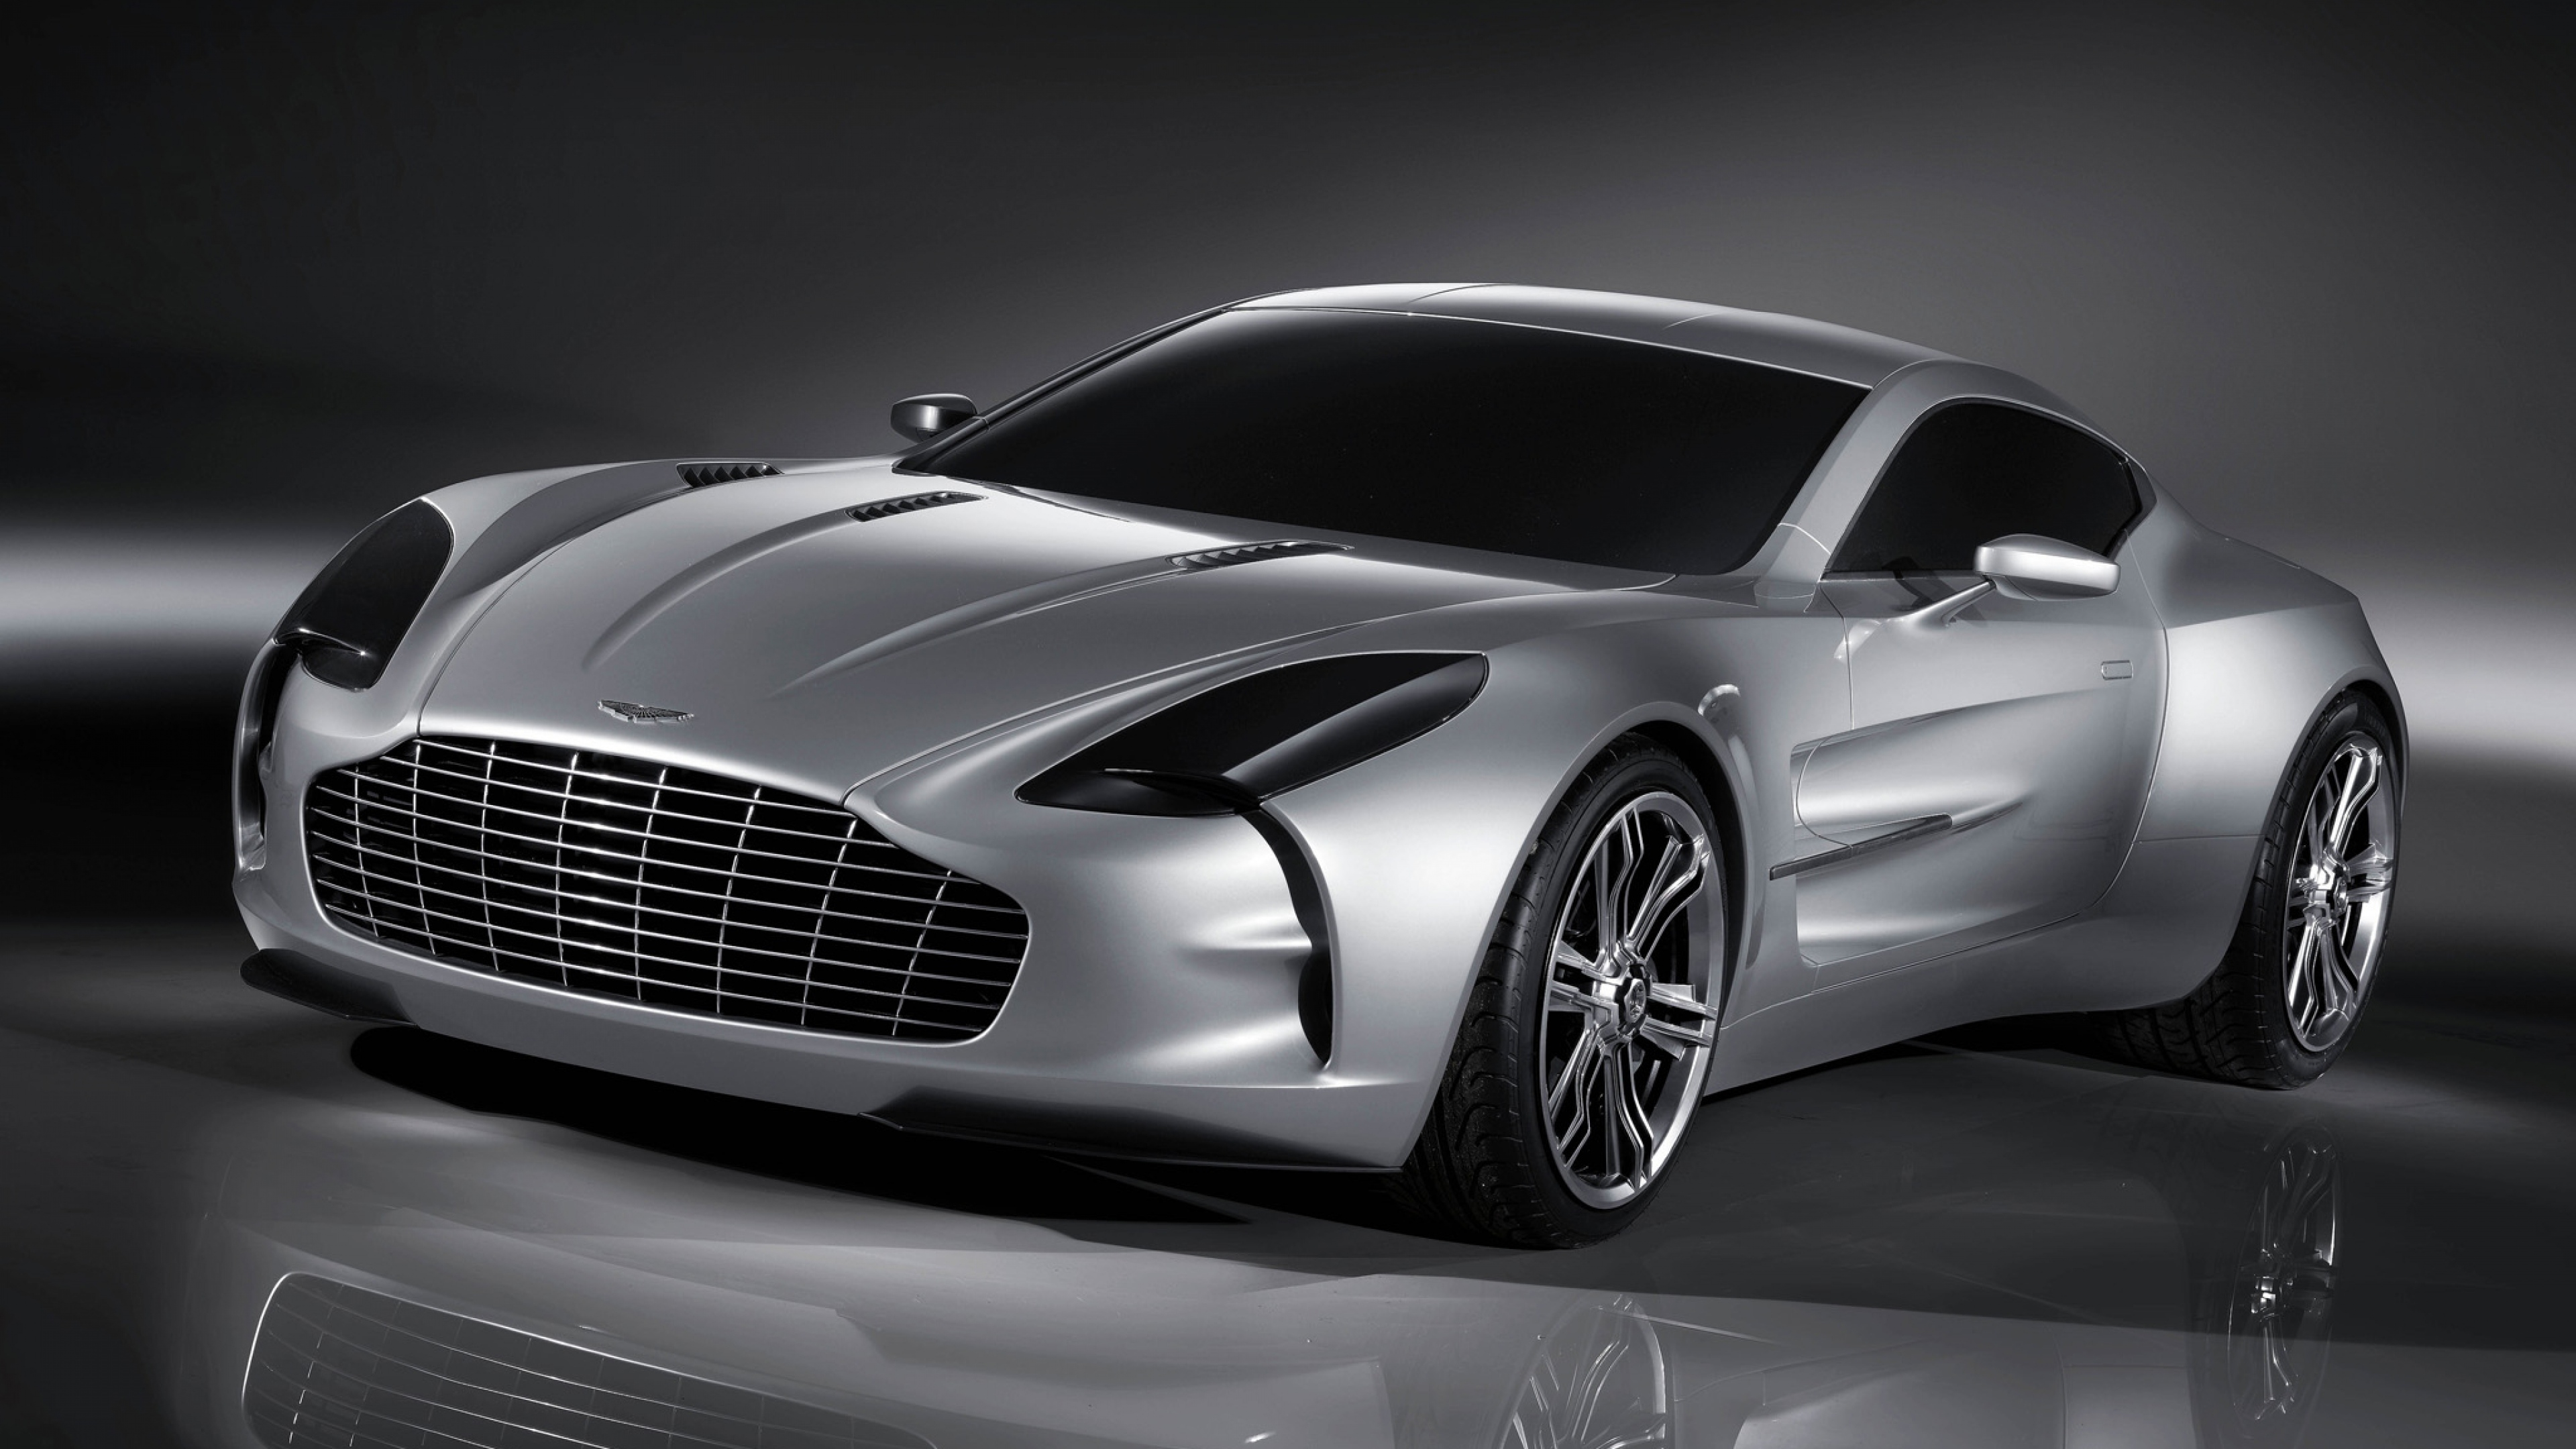 Download Wallpaper 3840x2160 Aston martin One 77 2008 Concept car 3840x2160